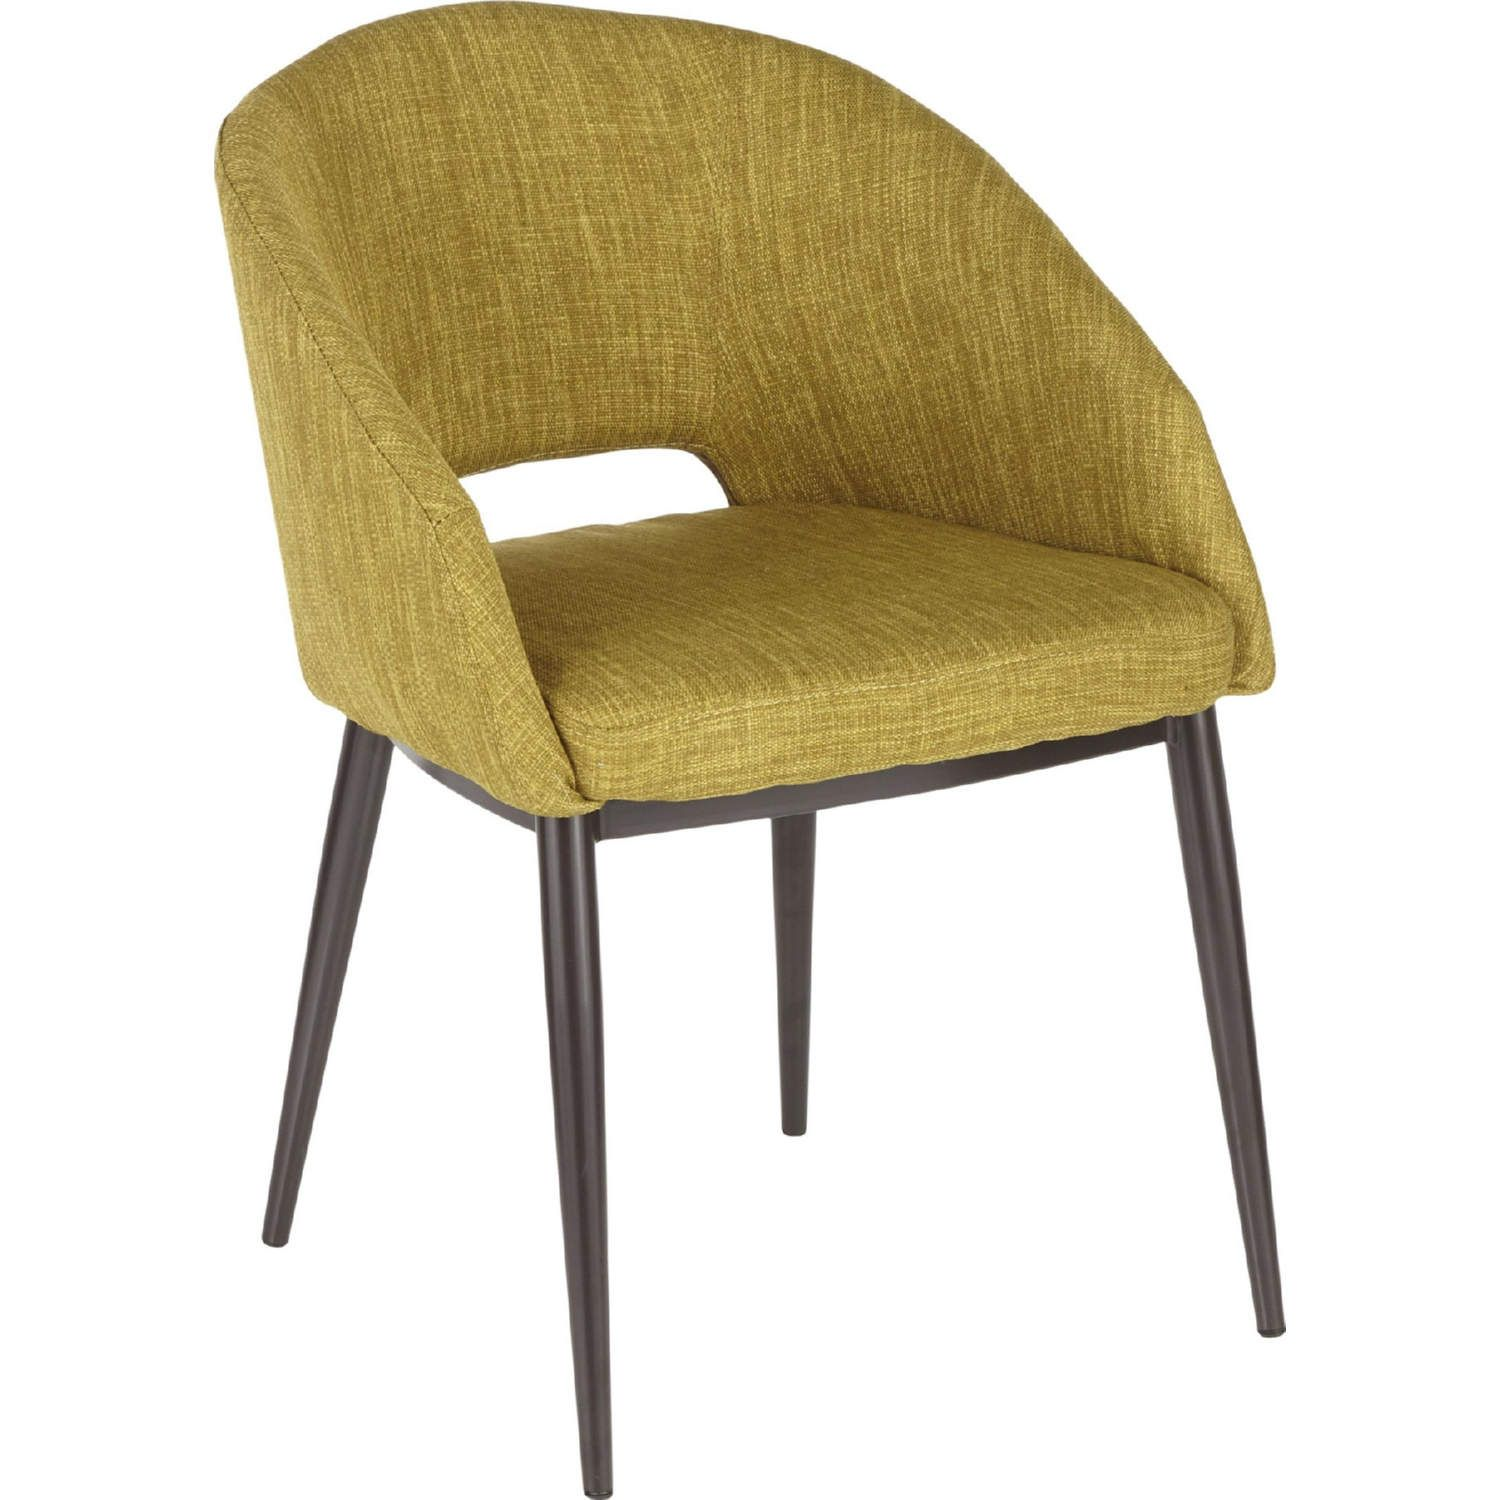 Renea Accent Chair Collection: Lumisource Renee Accent Chair Espresso Metal Legs Green